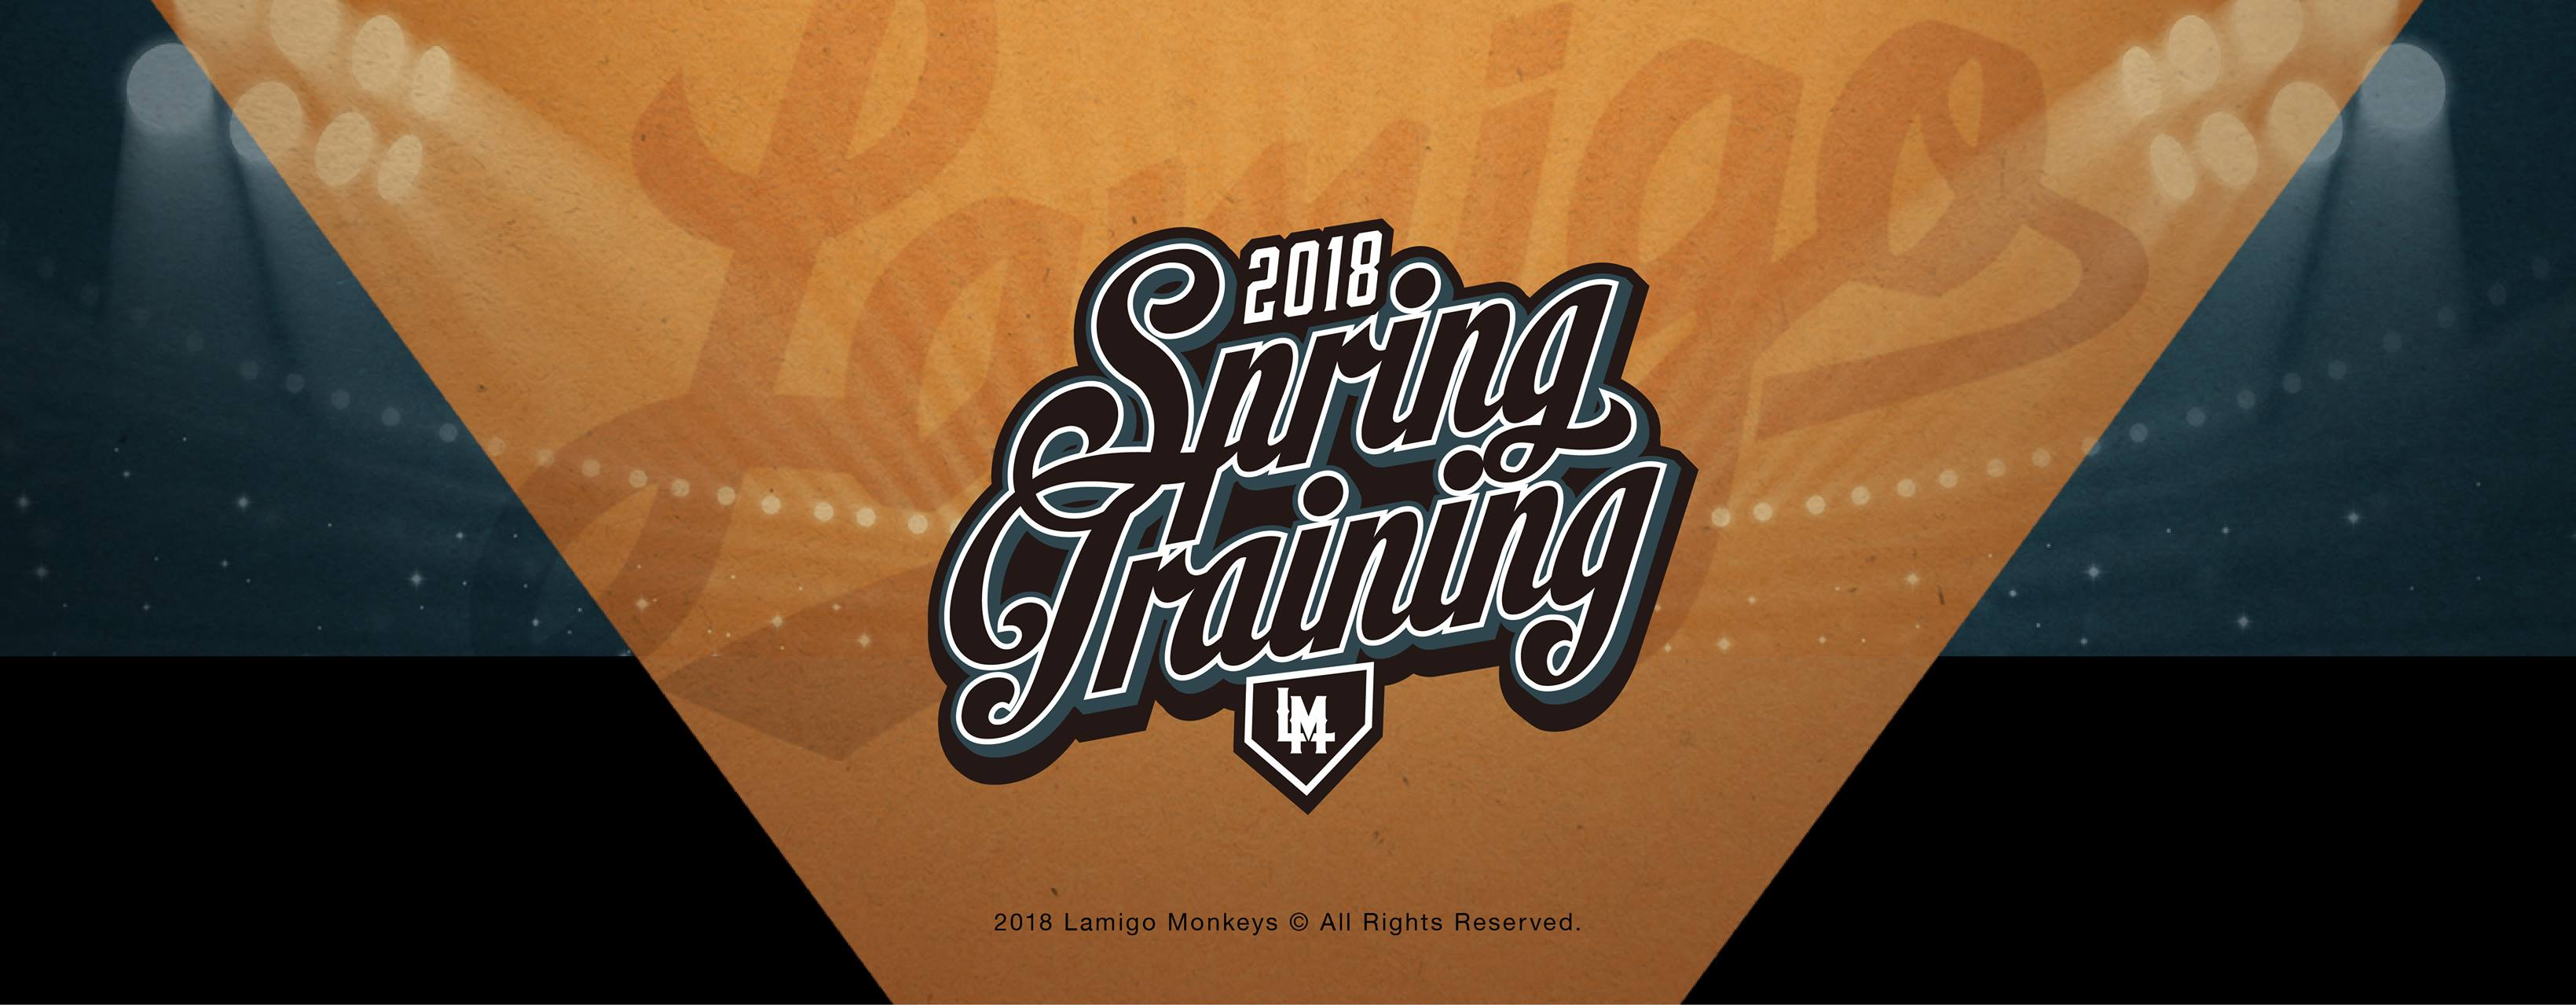 Lamigo Monkeys 2018 Spring Training logo